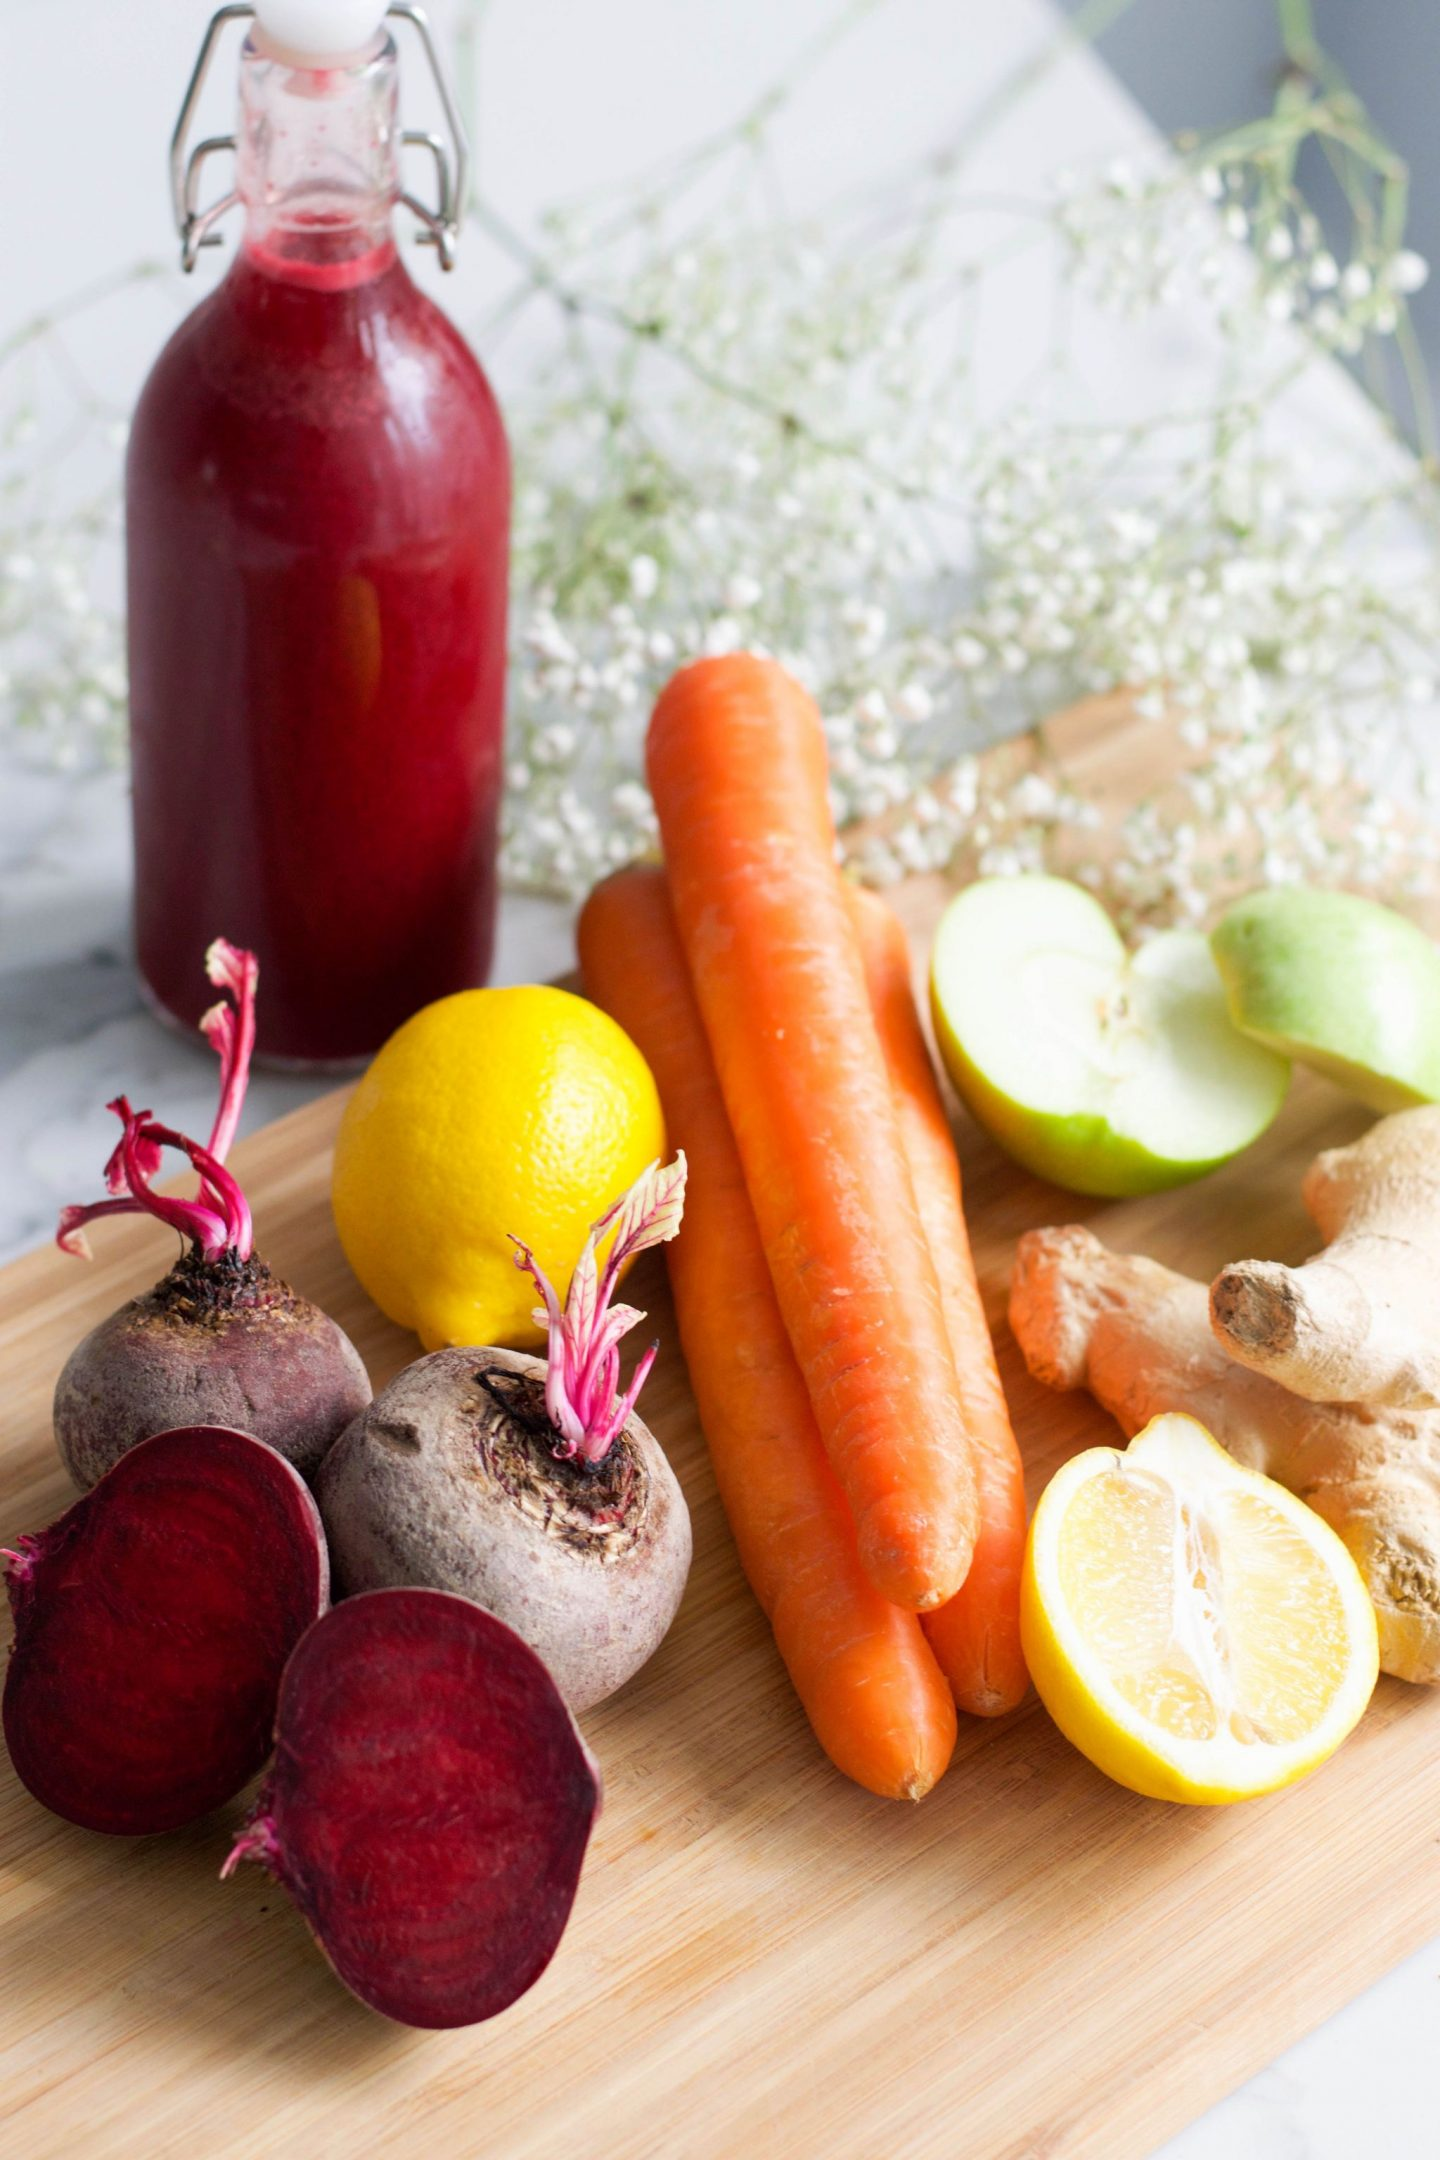 Wellness Wednesday: Making Your Own Superfood Juice at Home